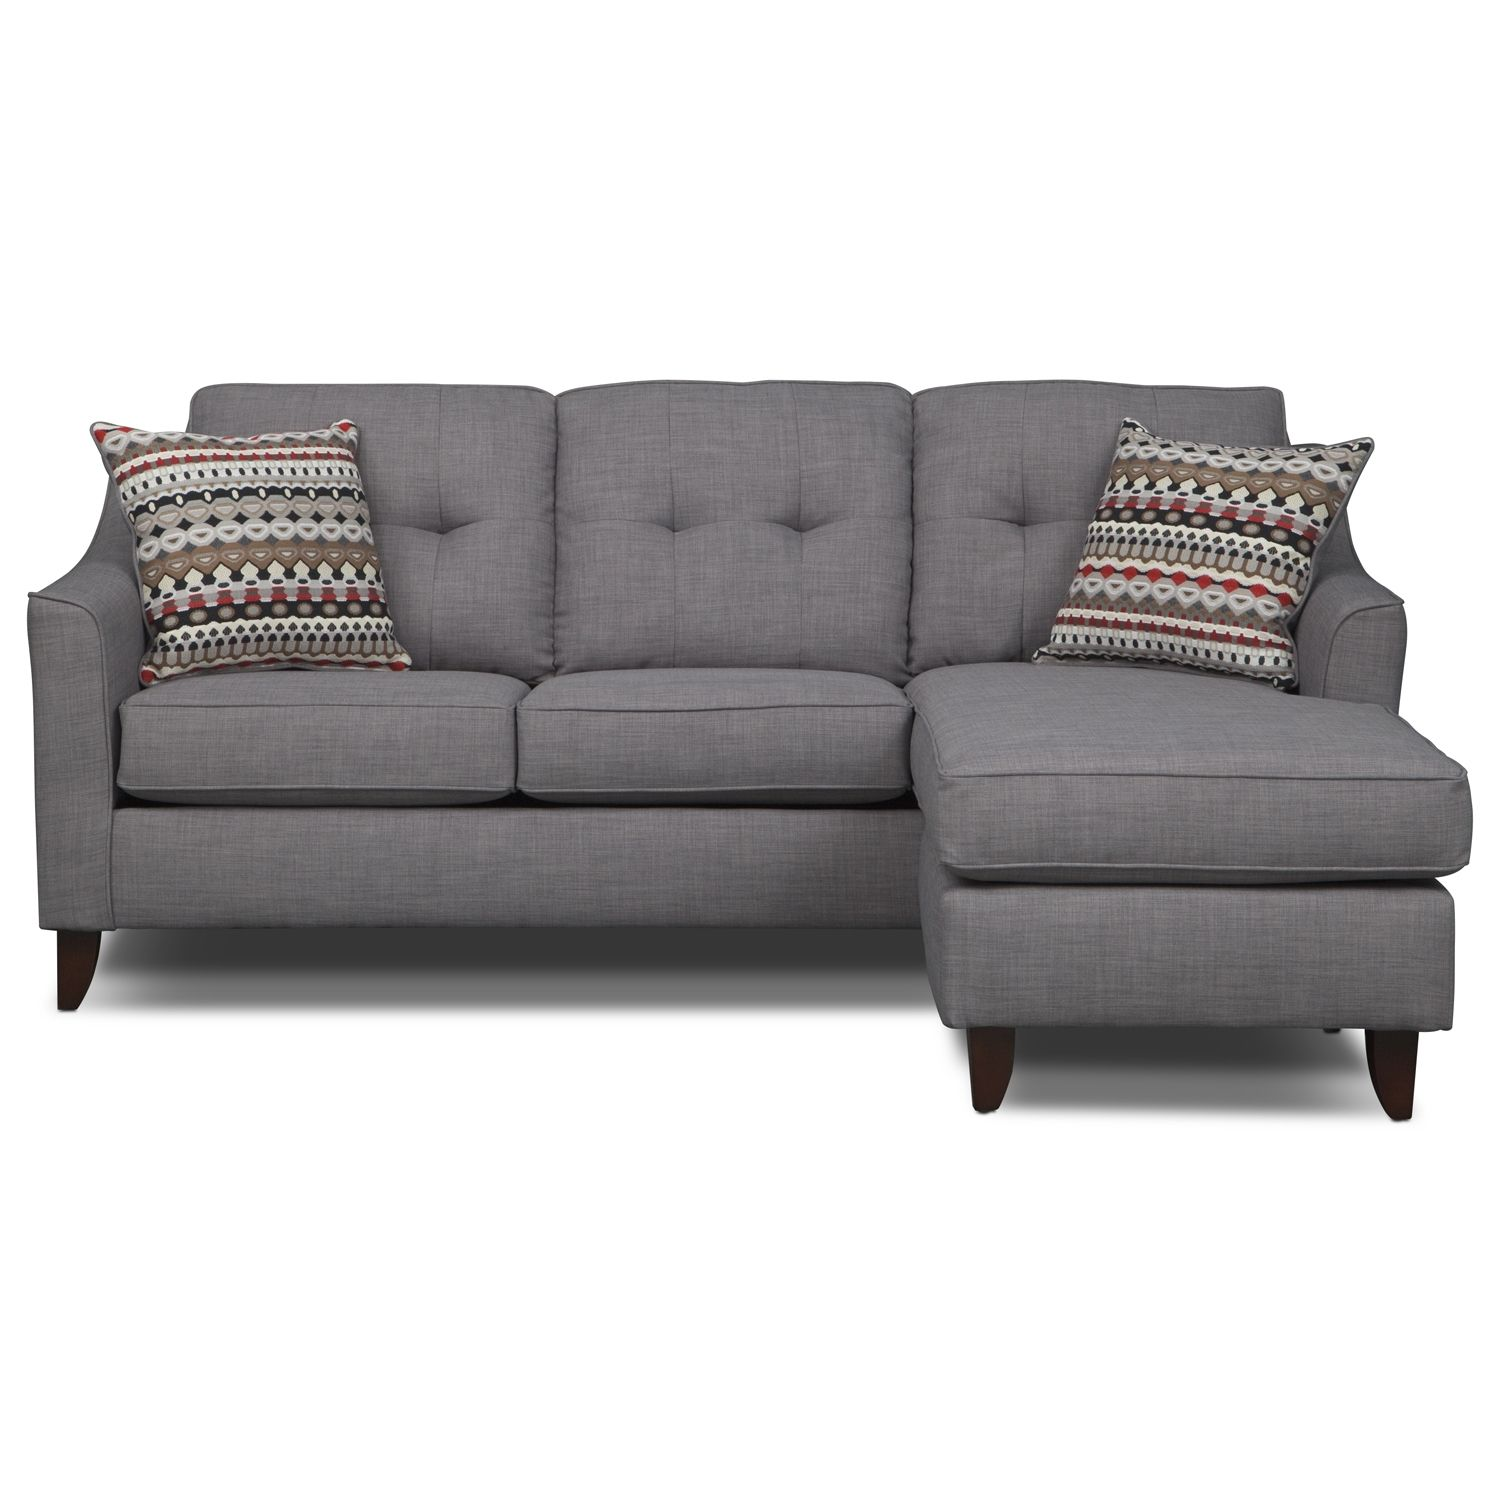 Merveilleux Marco Chaise Sofa | Value City Furniture